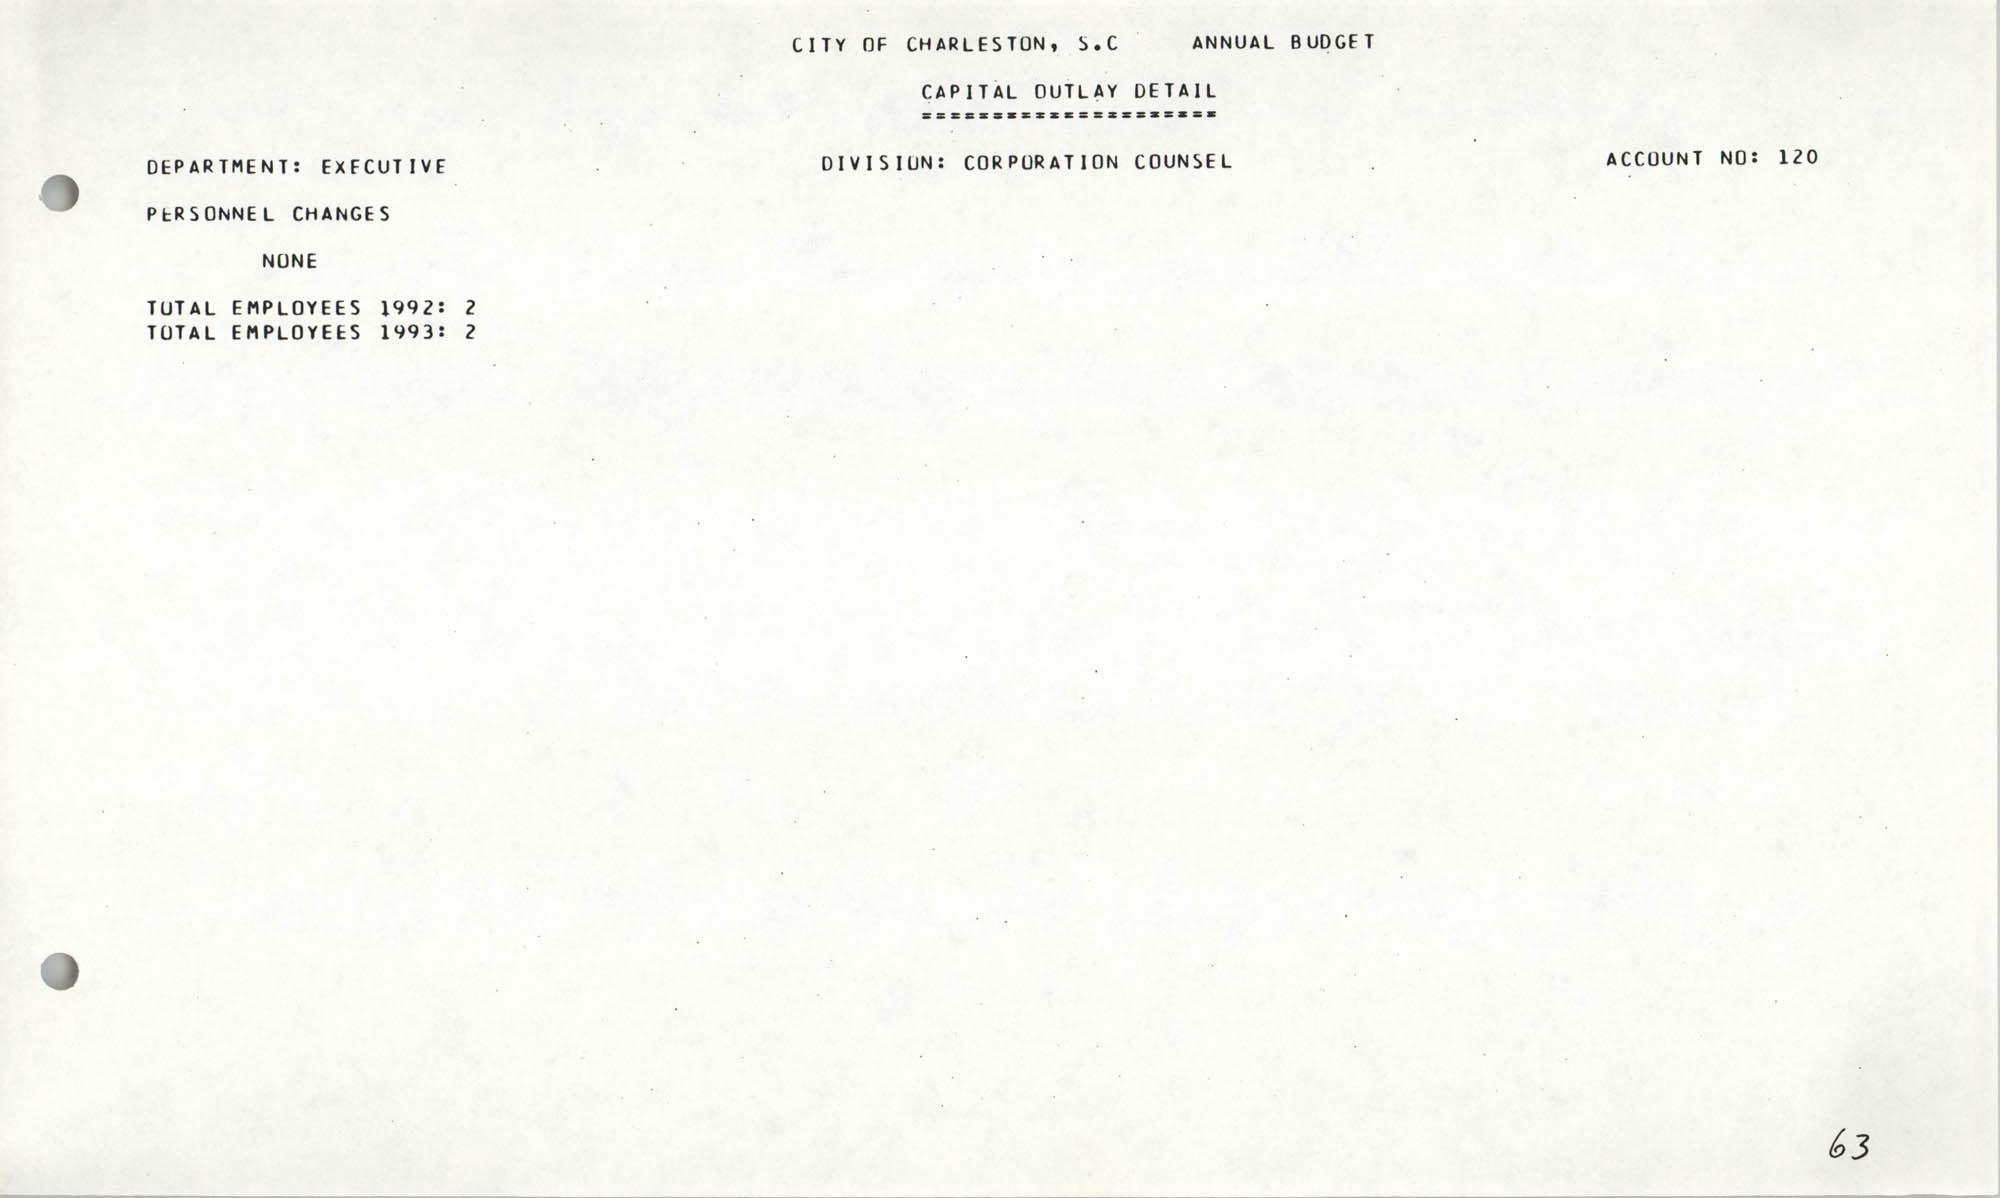 The City Council of Charleston, South Carolina, 1993 Budget, Page 63